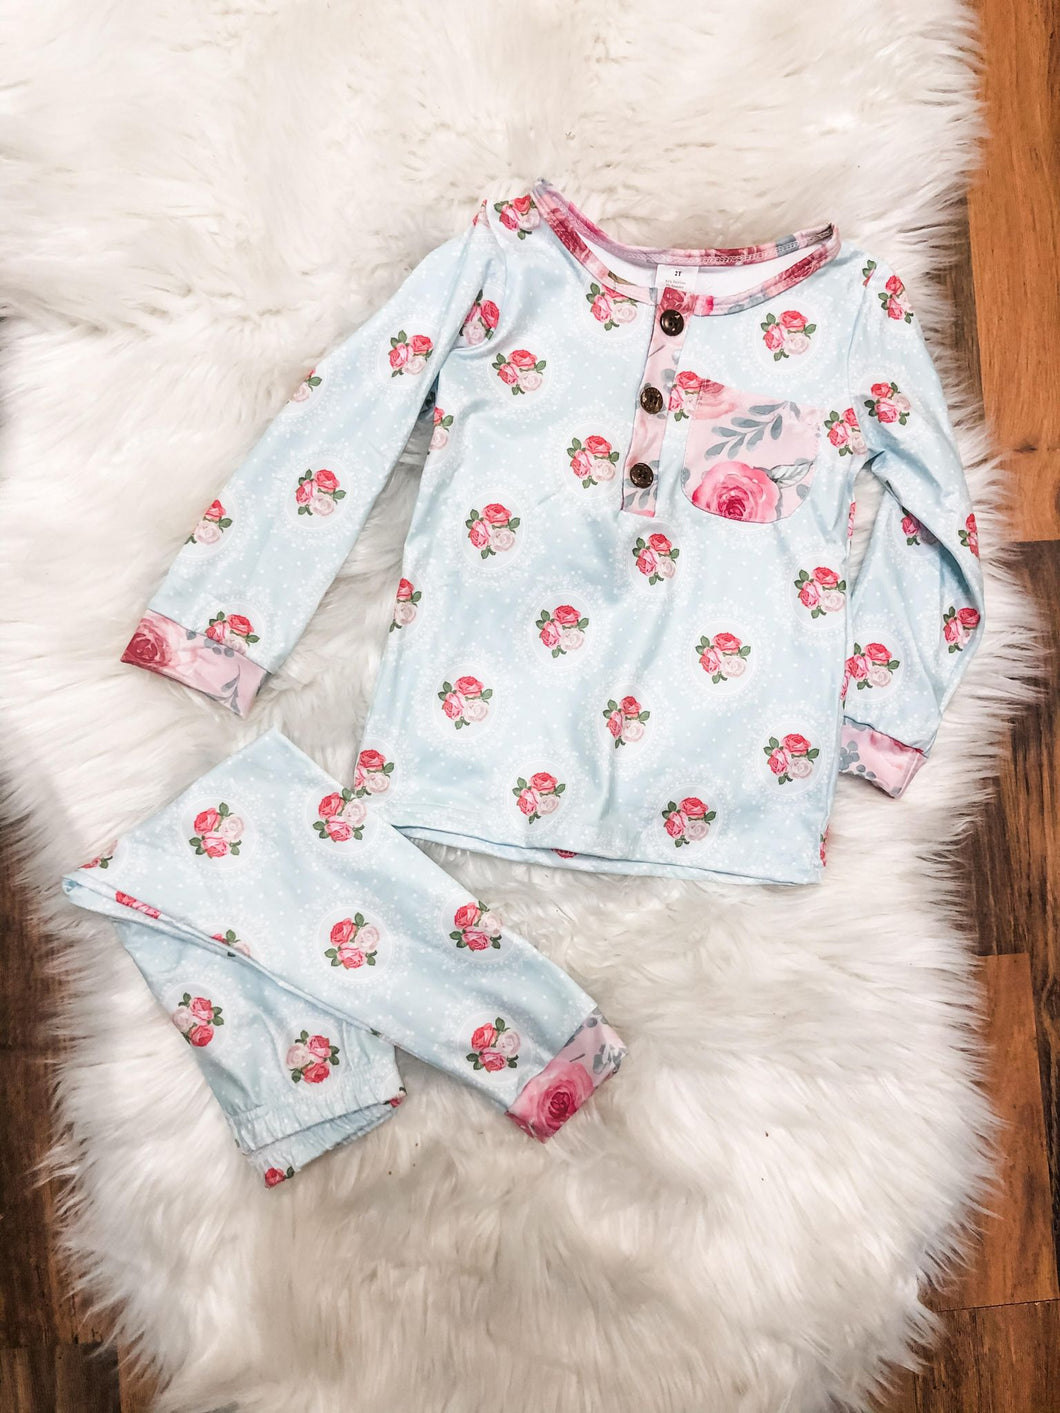 Framed Roses Pajama Set With Painted Roses- Long Sleeves